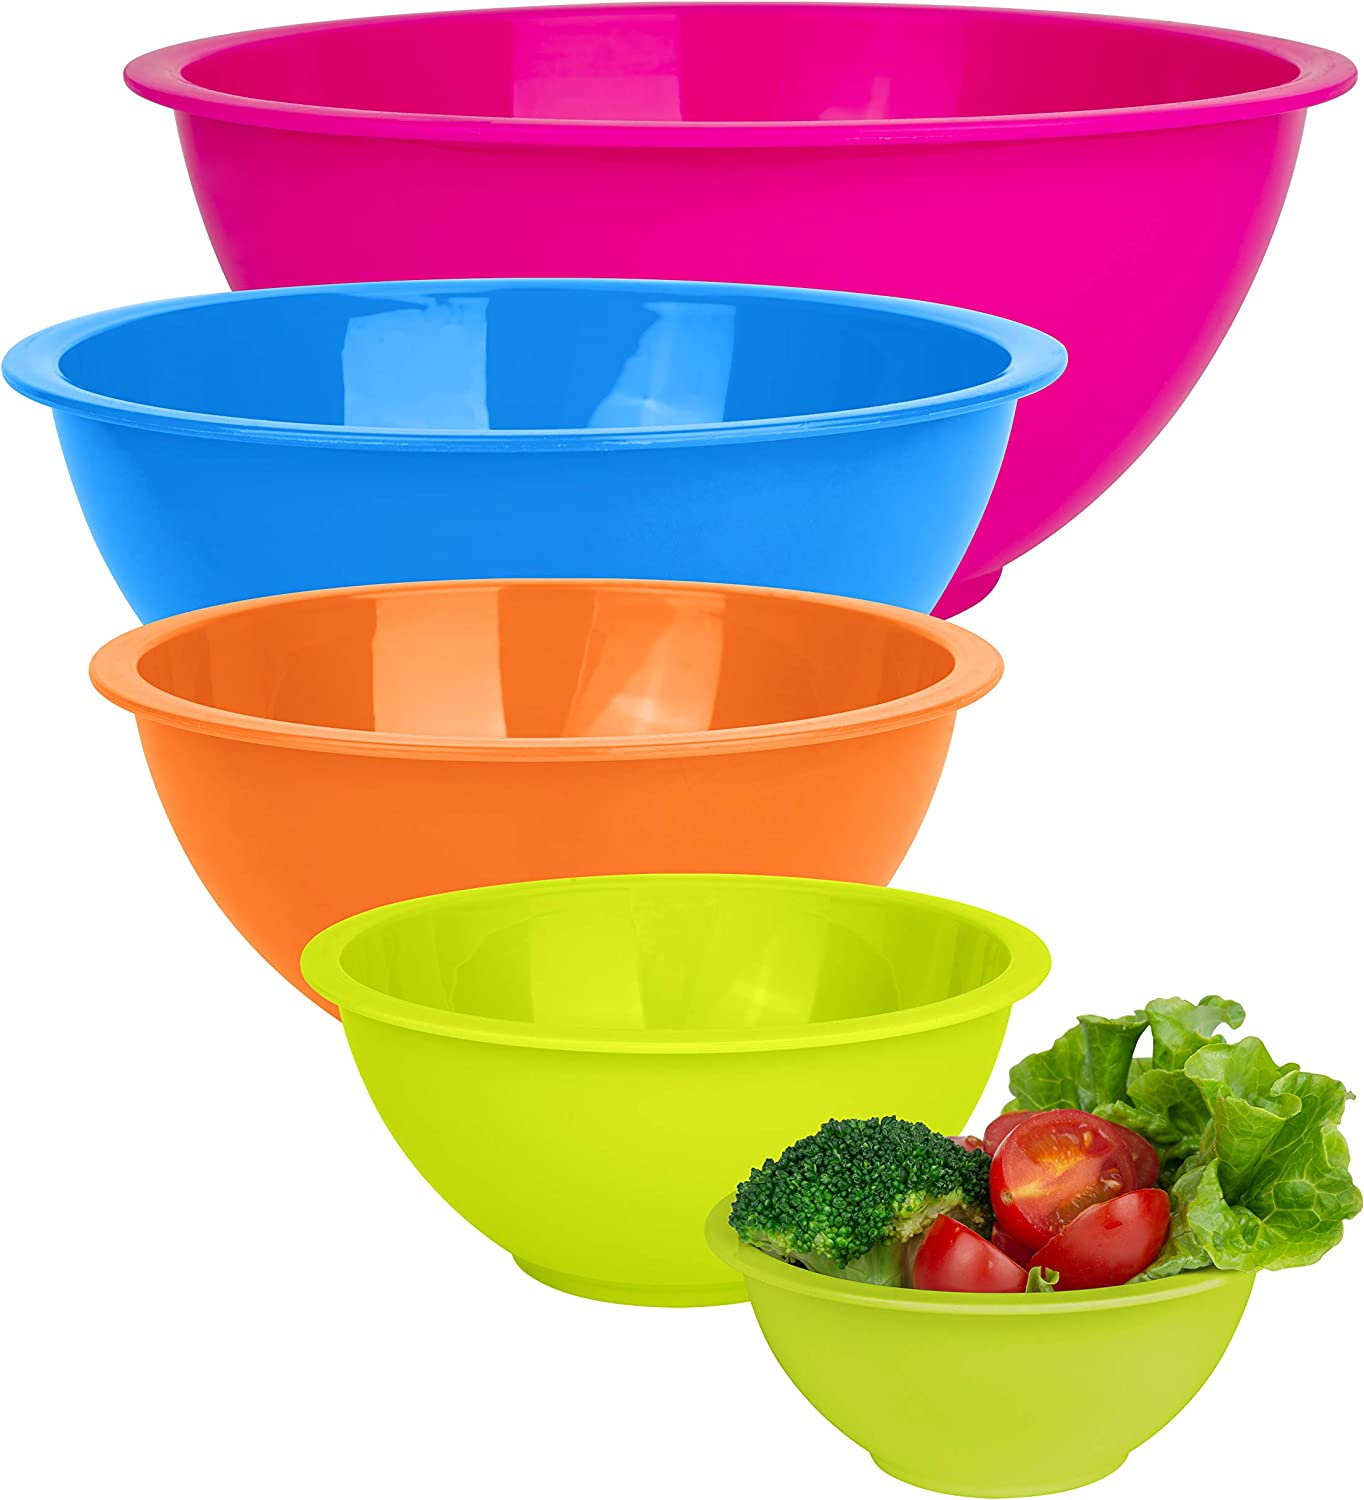 Set of 5 - Colorful Mixing Bowls - Plastic Mixing Bowl Set for Kitchen – Stackable Plastic Mixing Bowls – Dishwasher Safe Kitchen Bowls – BPA Free – Great for Cooking Serving Salads, Snack, Fruits,